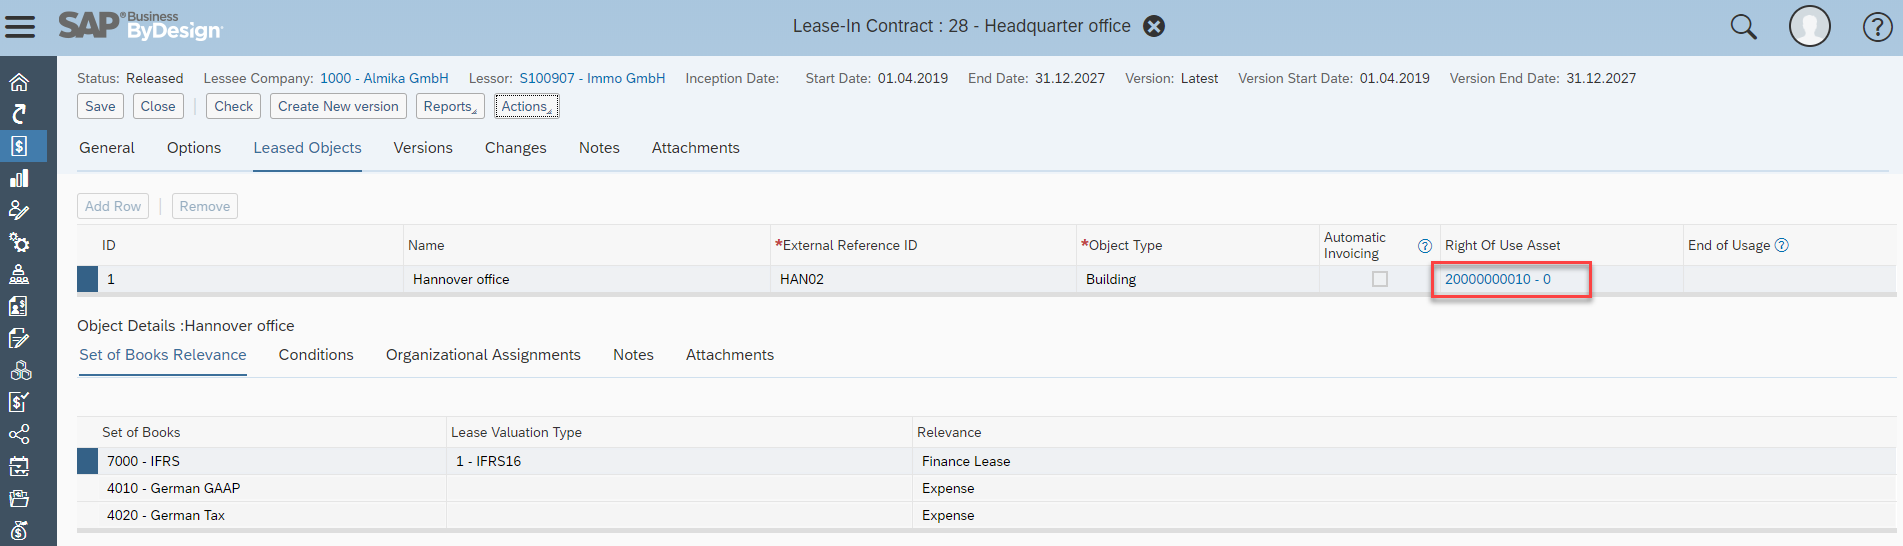 Lease Accounting for Lessees with SAP Business ByDesign